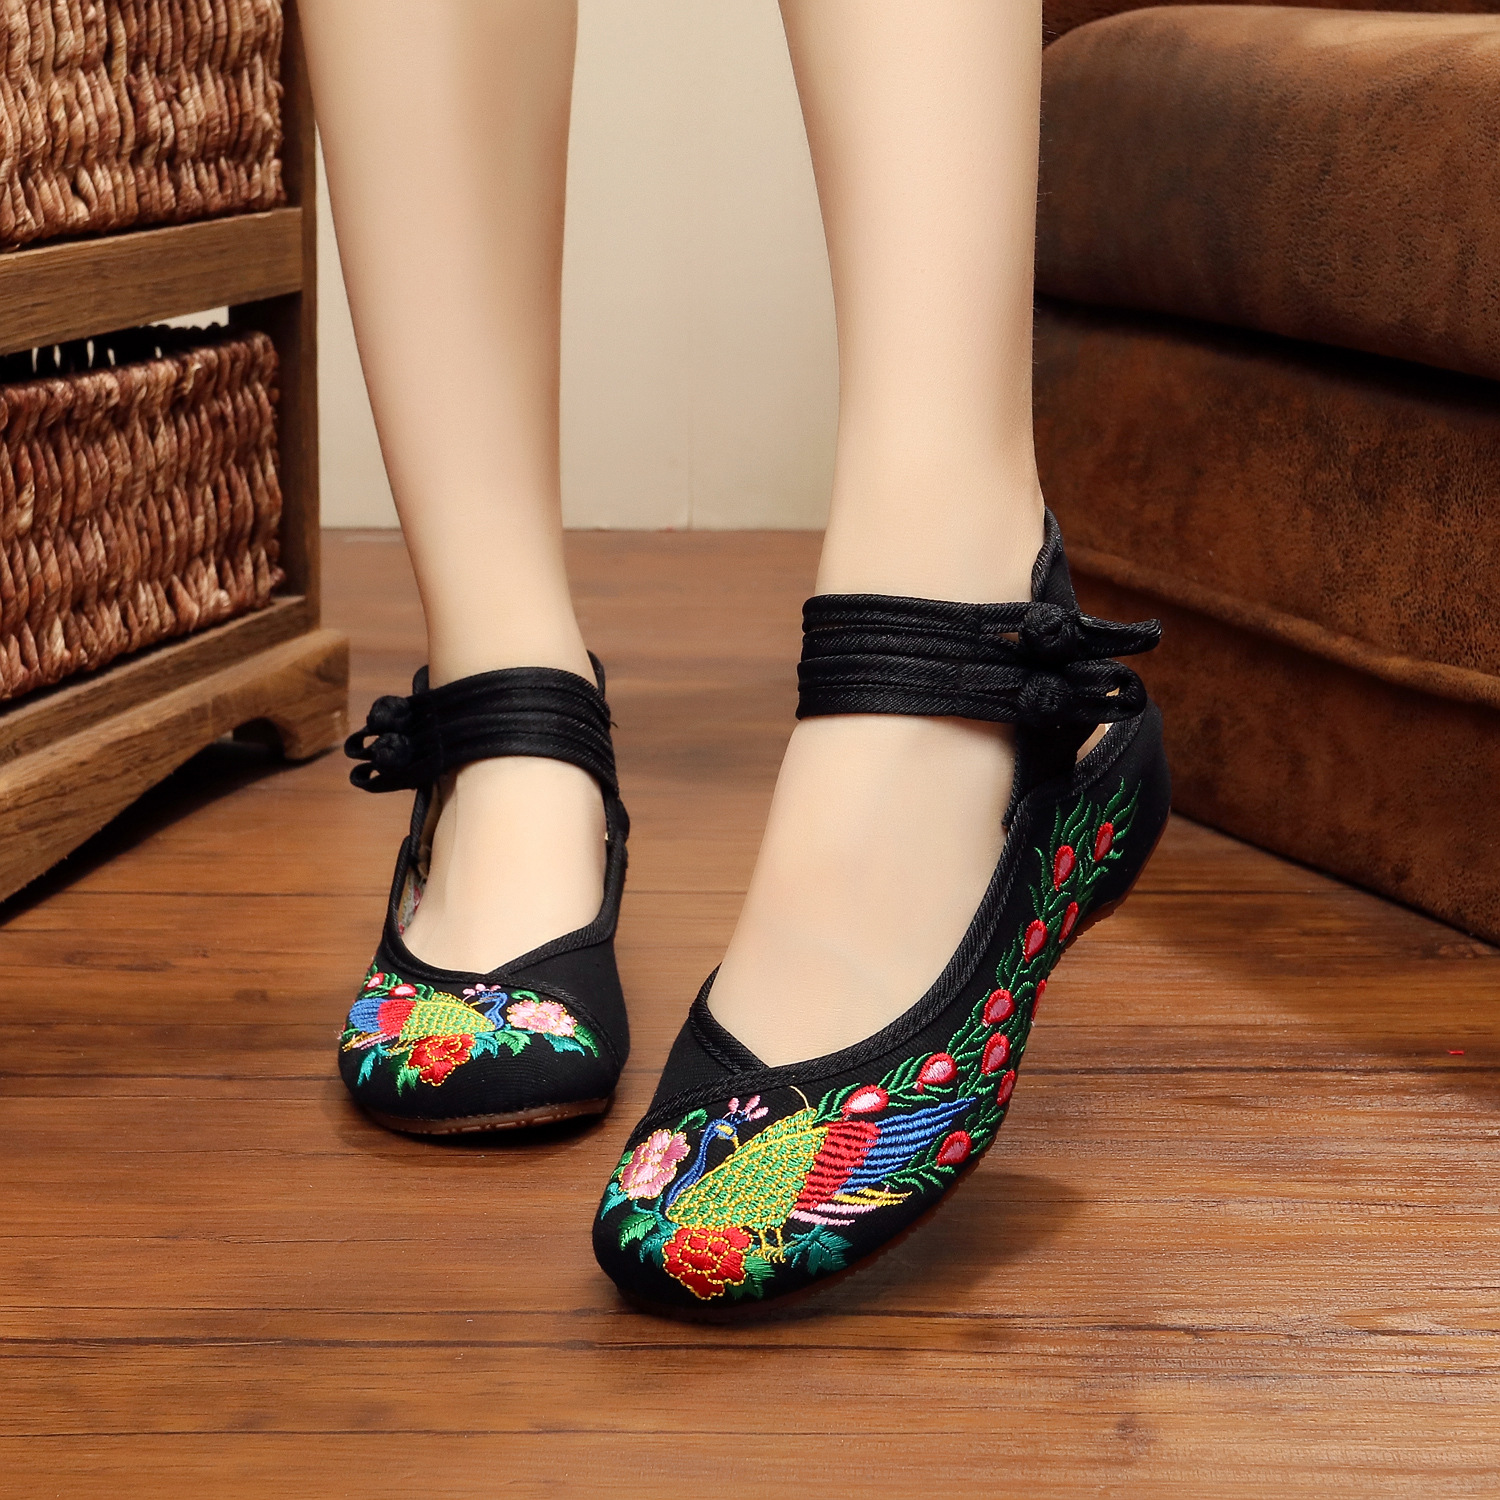 New hot sale fashion Retro style shoes woman colourful peacock embroidery quality women flats shoes casual travel canvas shoes<br><br>Aliexpress